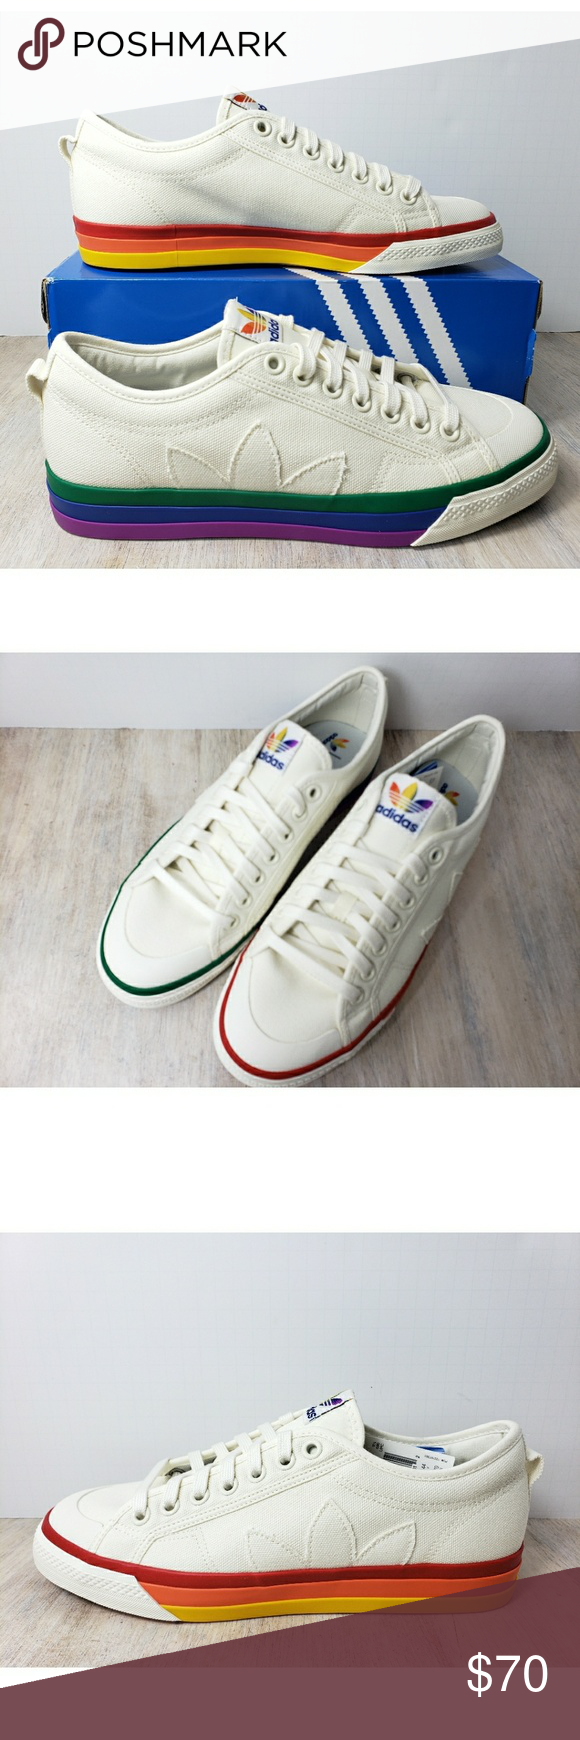 Adidas Shoes 80% OFF!>> Adidas Originals Nizza Pride Rainbow Adidas Originals Nizza Pride Rainbow Off White New with box. adidas Shoes #Adidas #Adidasshoes #shoes #style #Accessories #shopping #styles #outfit #pretty #girl #girls #beauty #beautiful #me #cute #stylish #design #fashion #outfits #diy #design